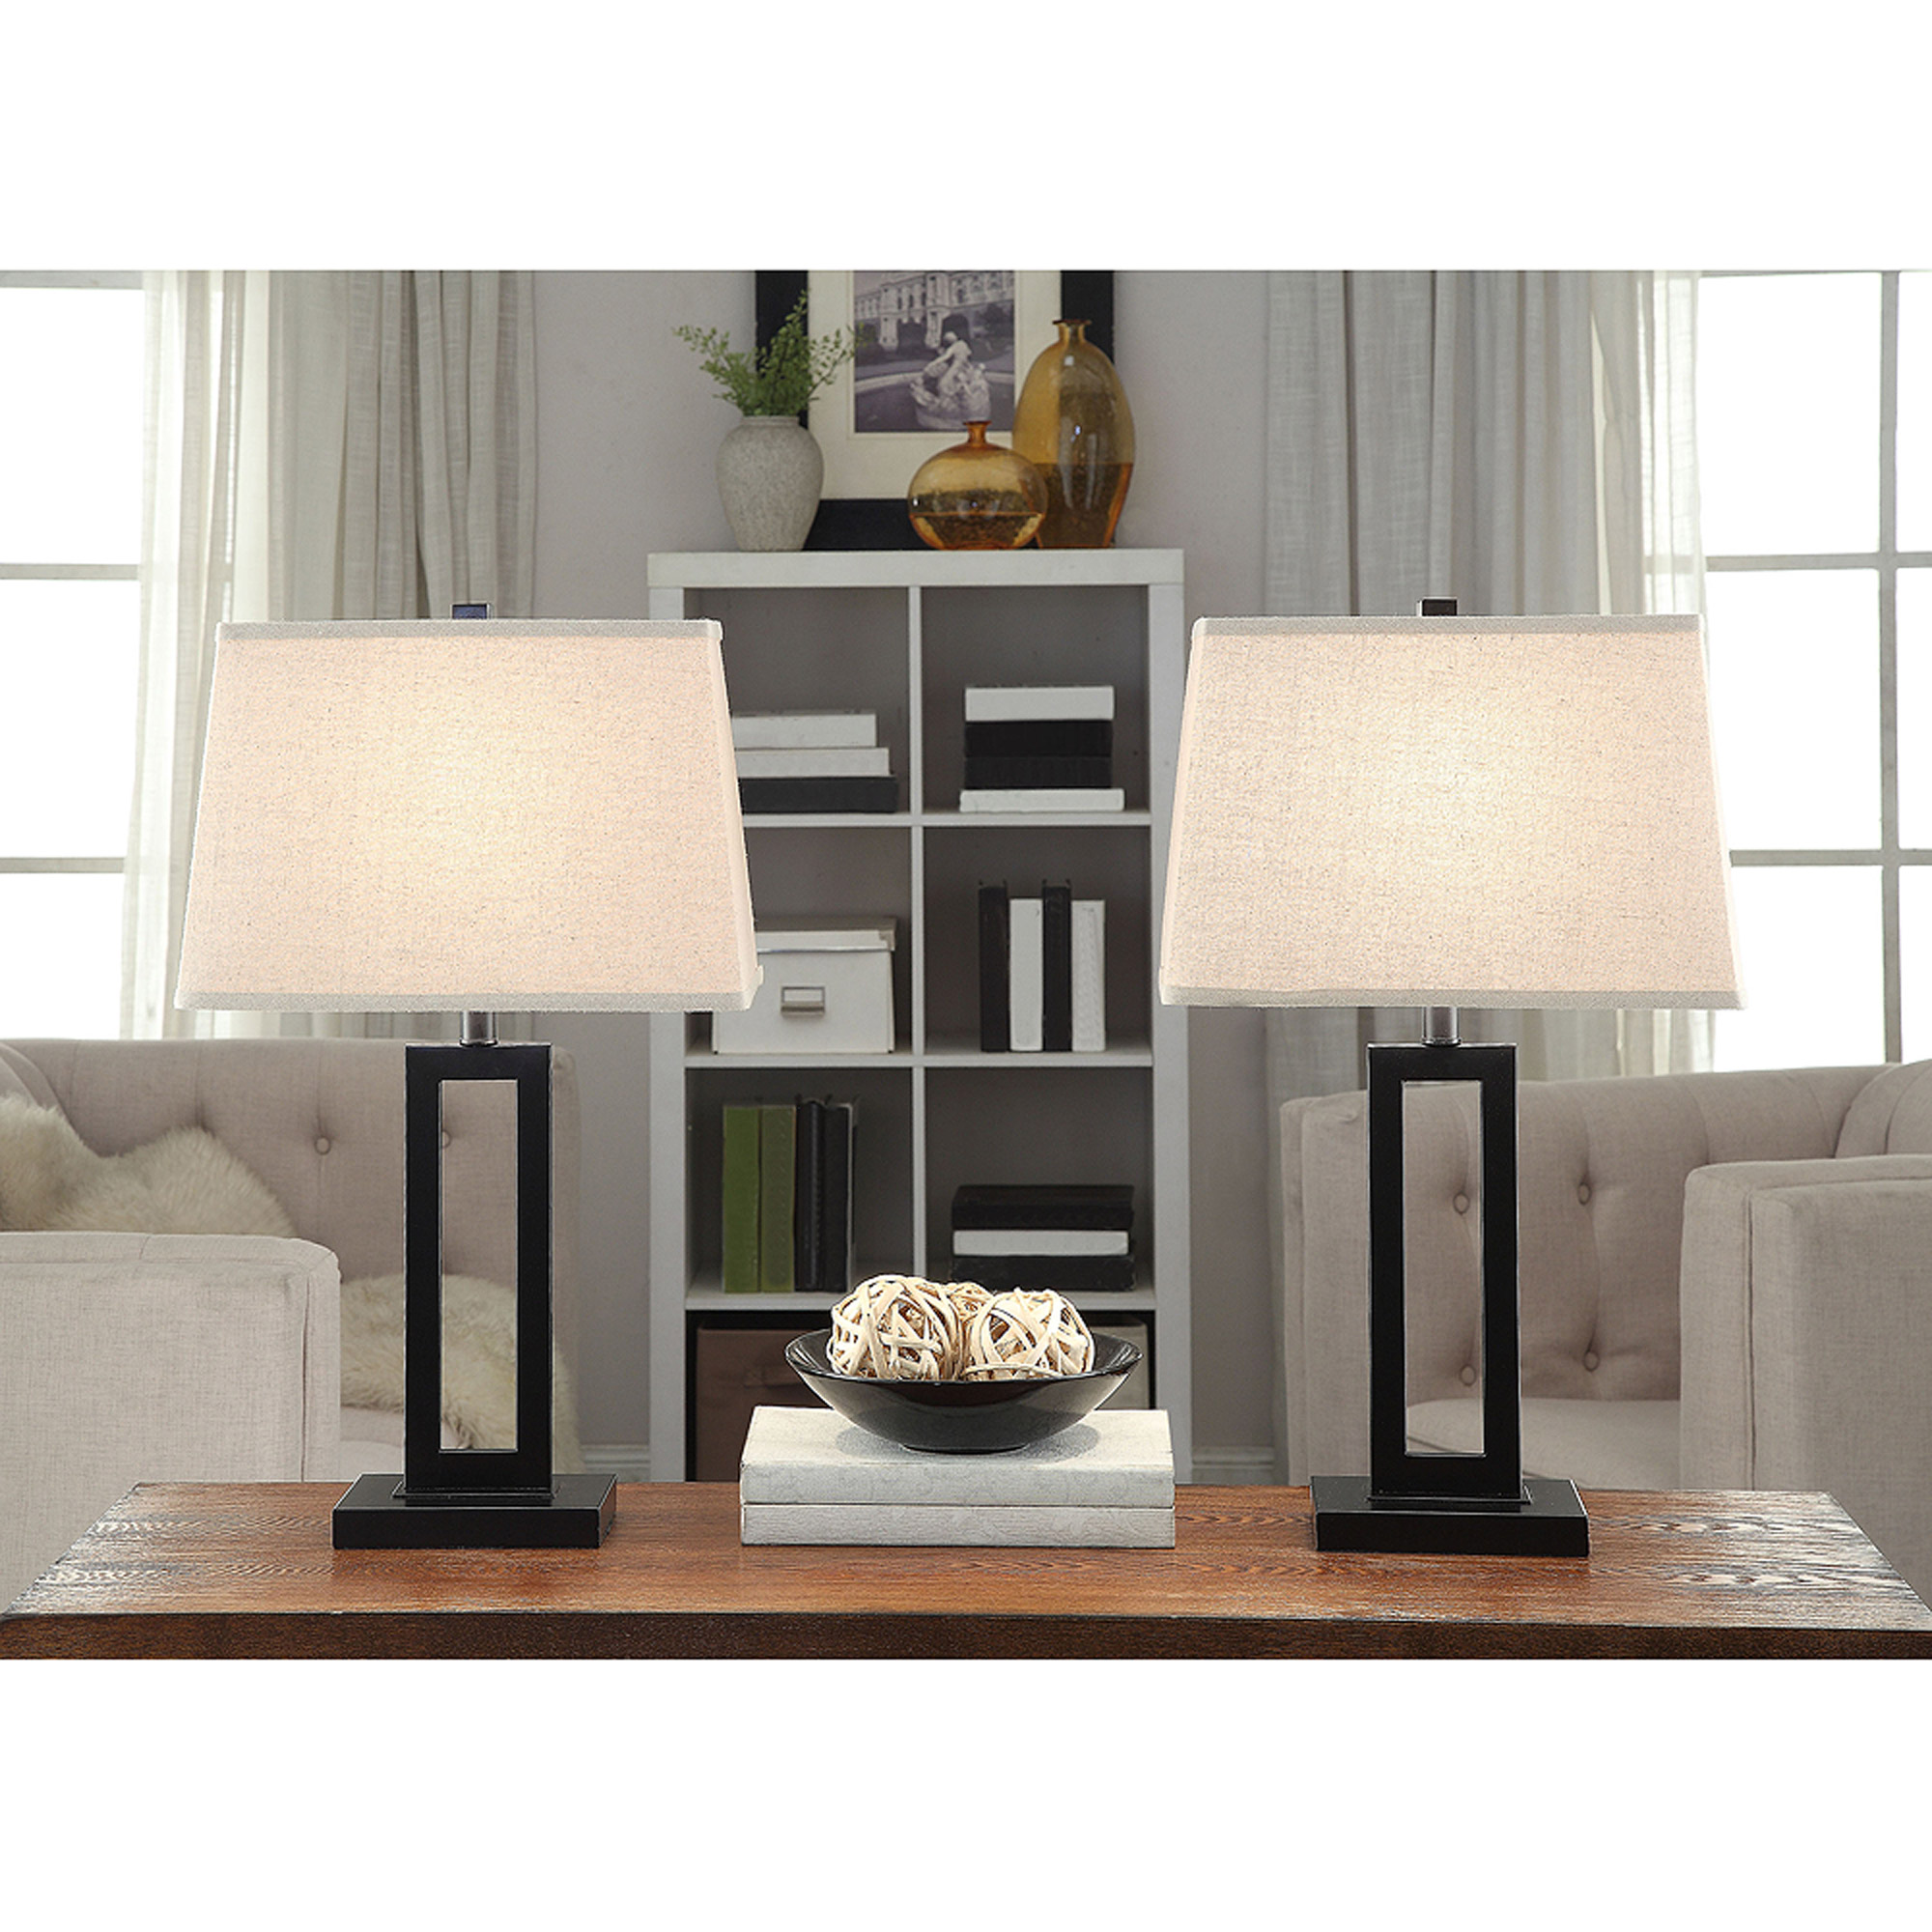 Better Homes and Gardens Open Work Lamps, Set of 2, Black